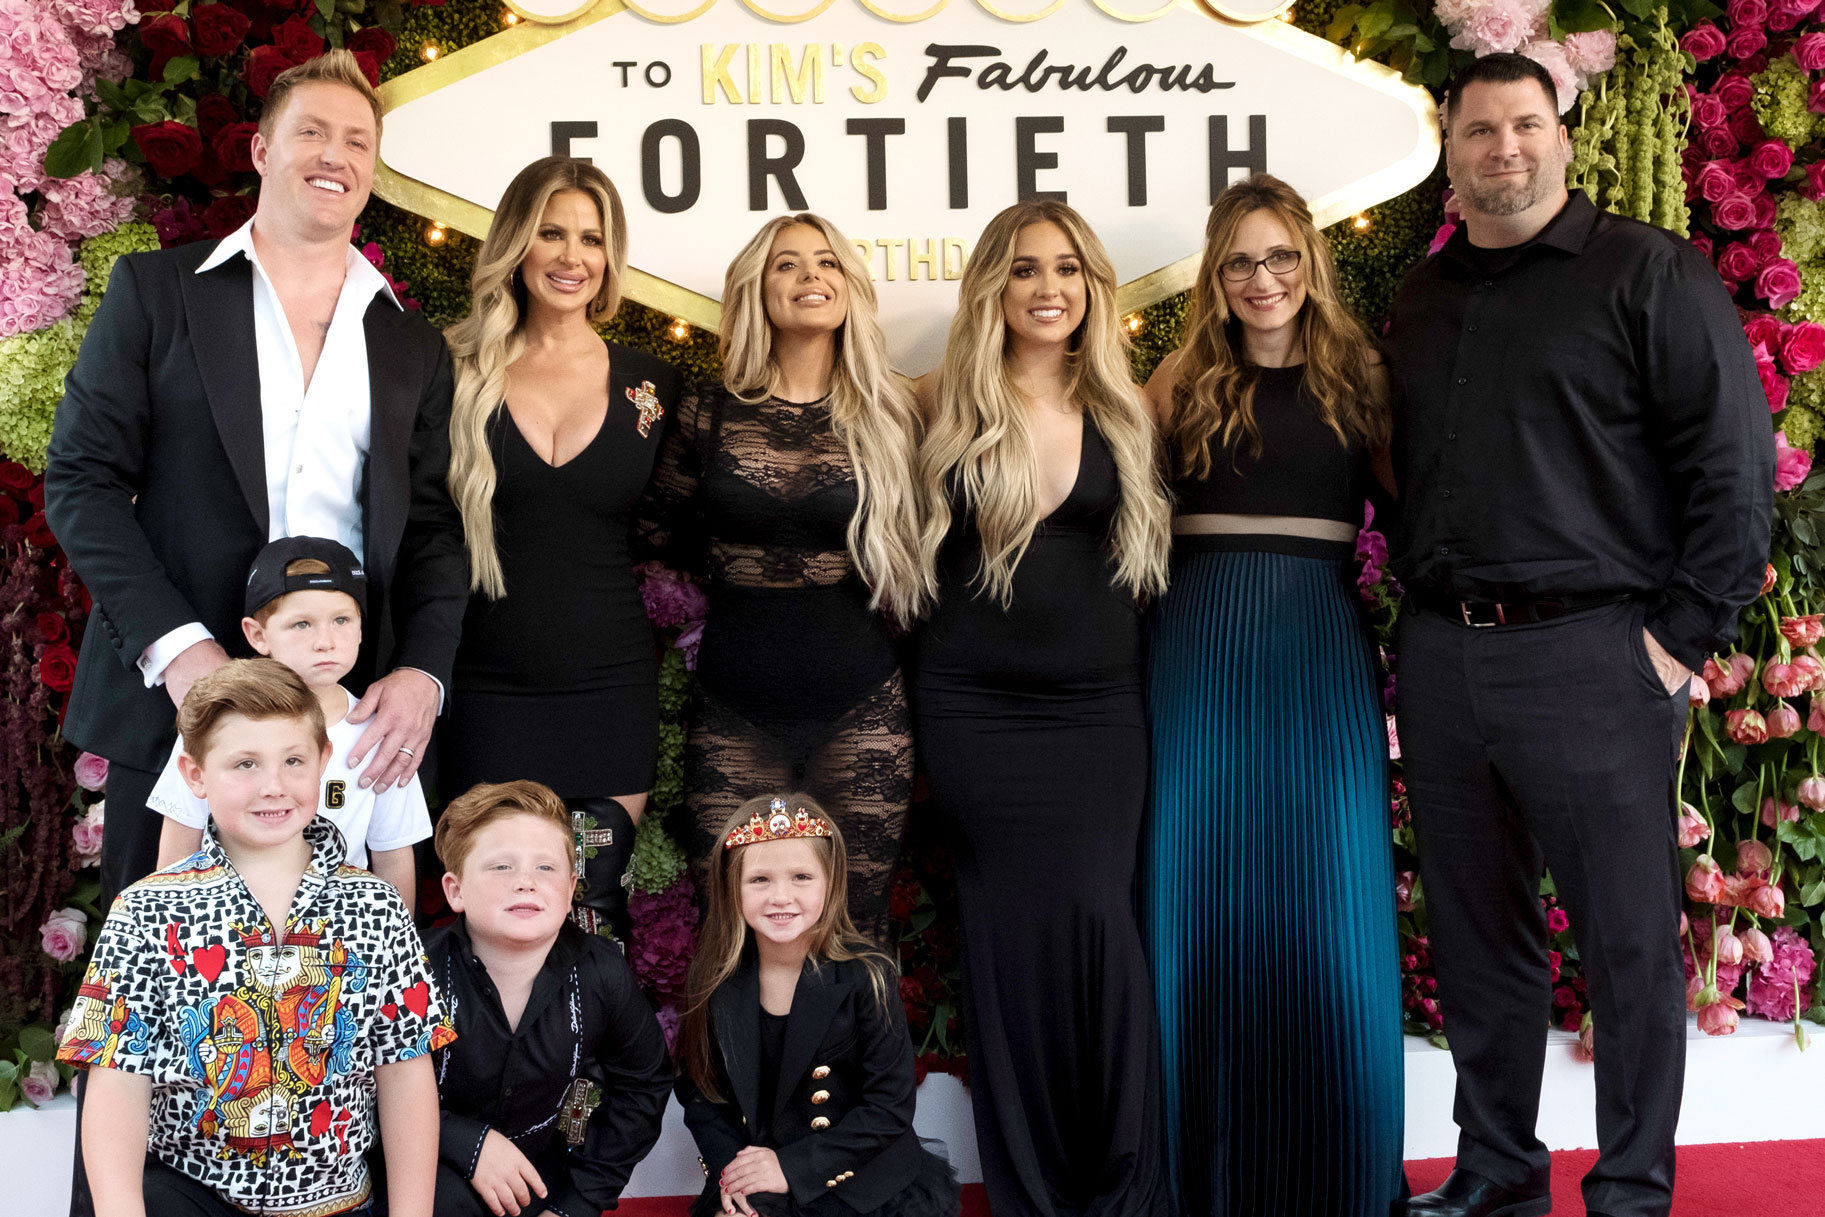 Kim Zolciak-Biermann with Family at her 40th birthday party